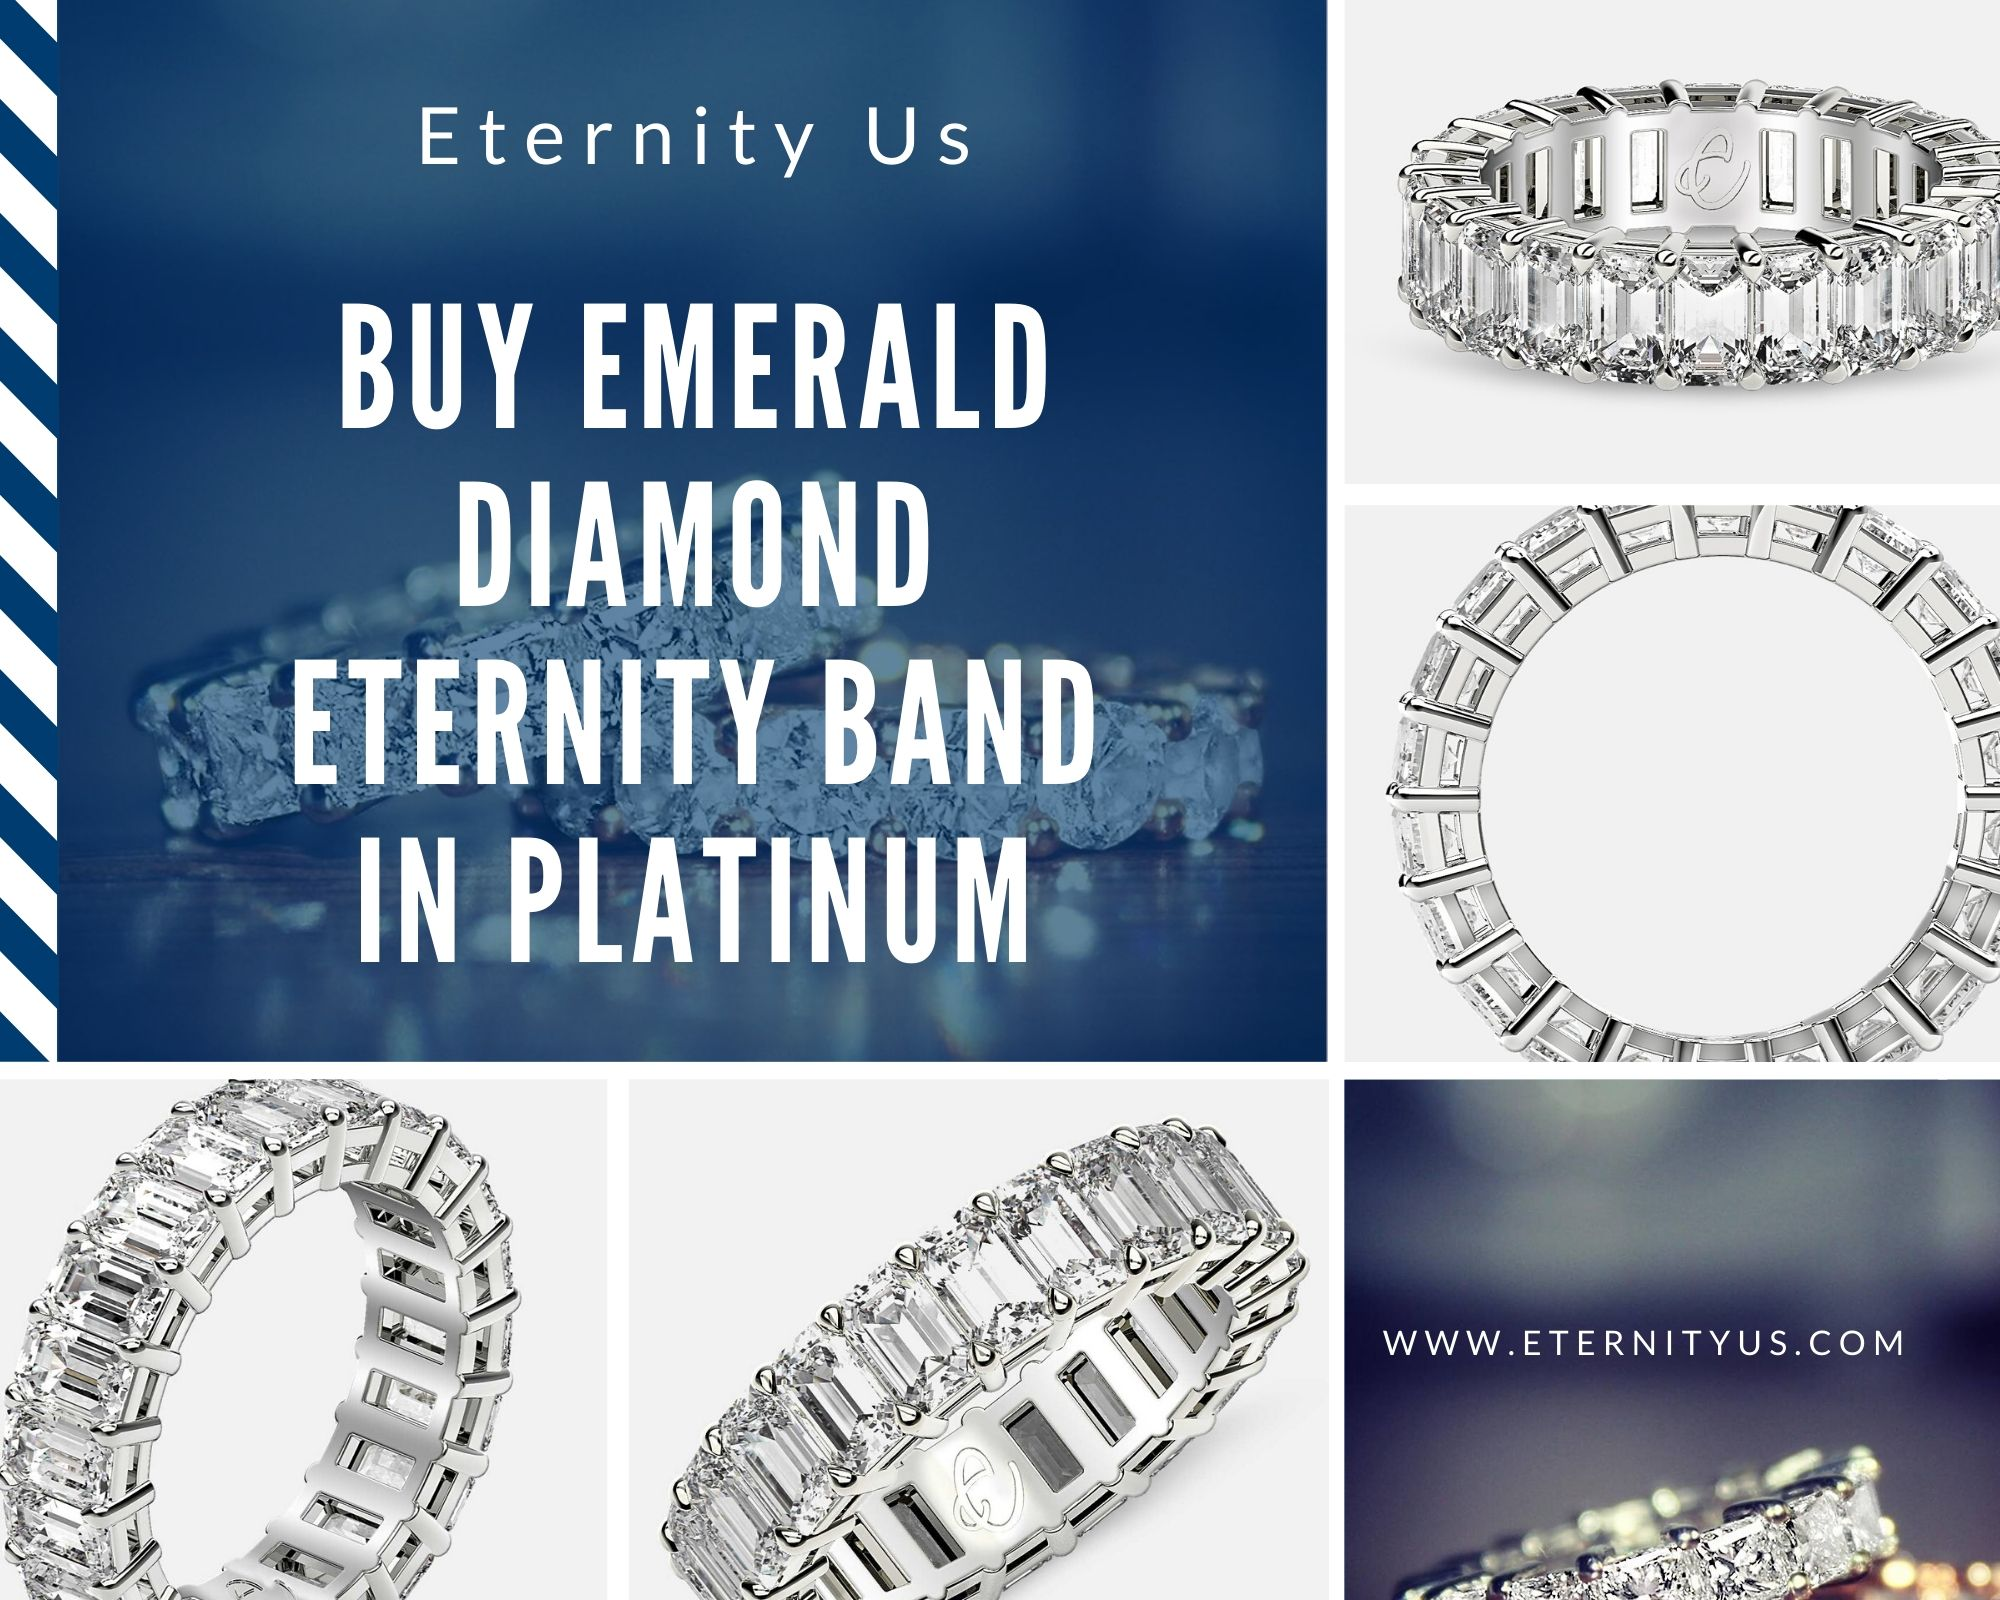 Buy Emerald Diamond Eternity Band in Platinum at Best Price - www.eternityus.com